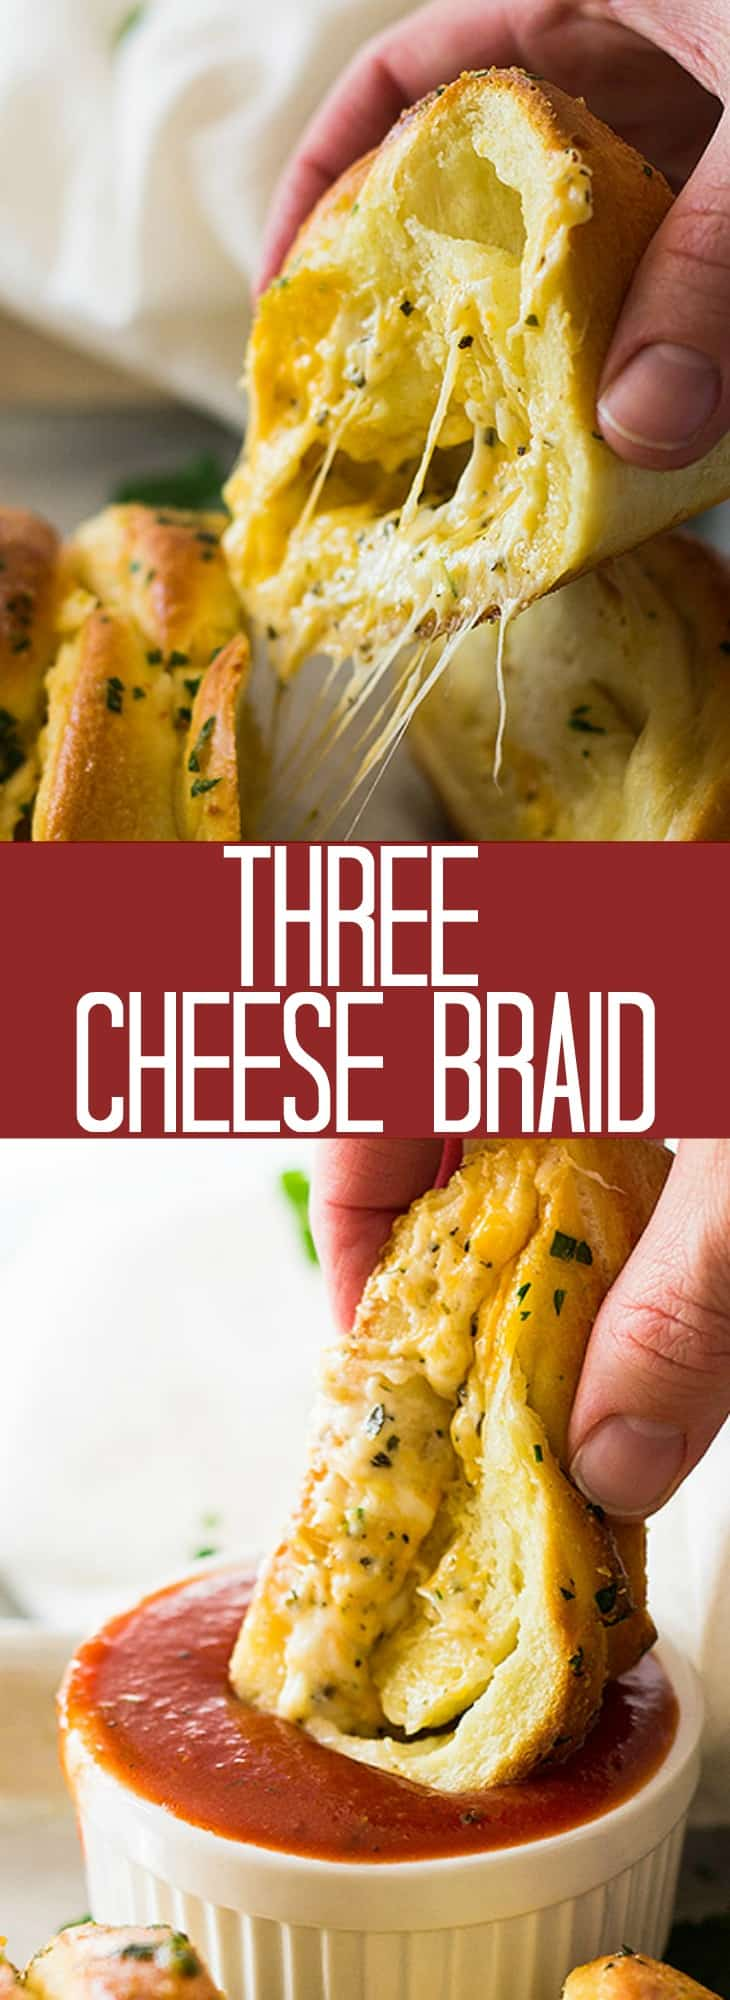 This Three Cheese Braid is filled with lots of ooey gooey cheese all wrapped inside of a homemade pizza dough! Then brushed with melted butter and garlic!! Perfect for appetizers, along side any meal or just for snacking!